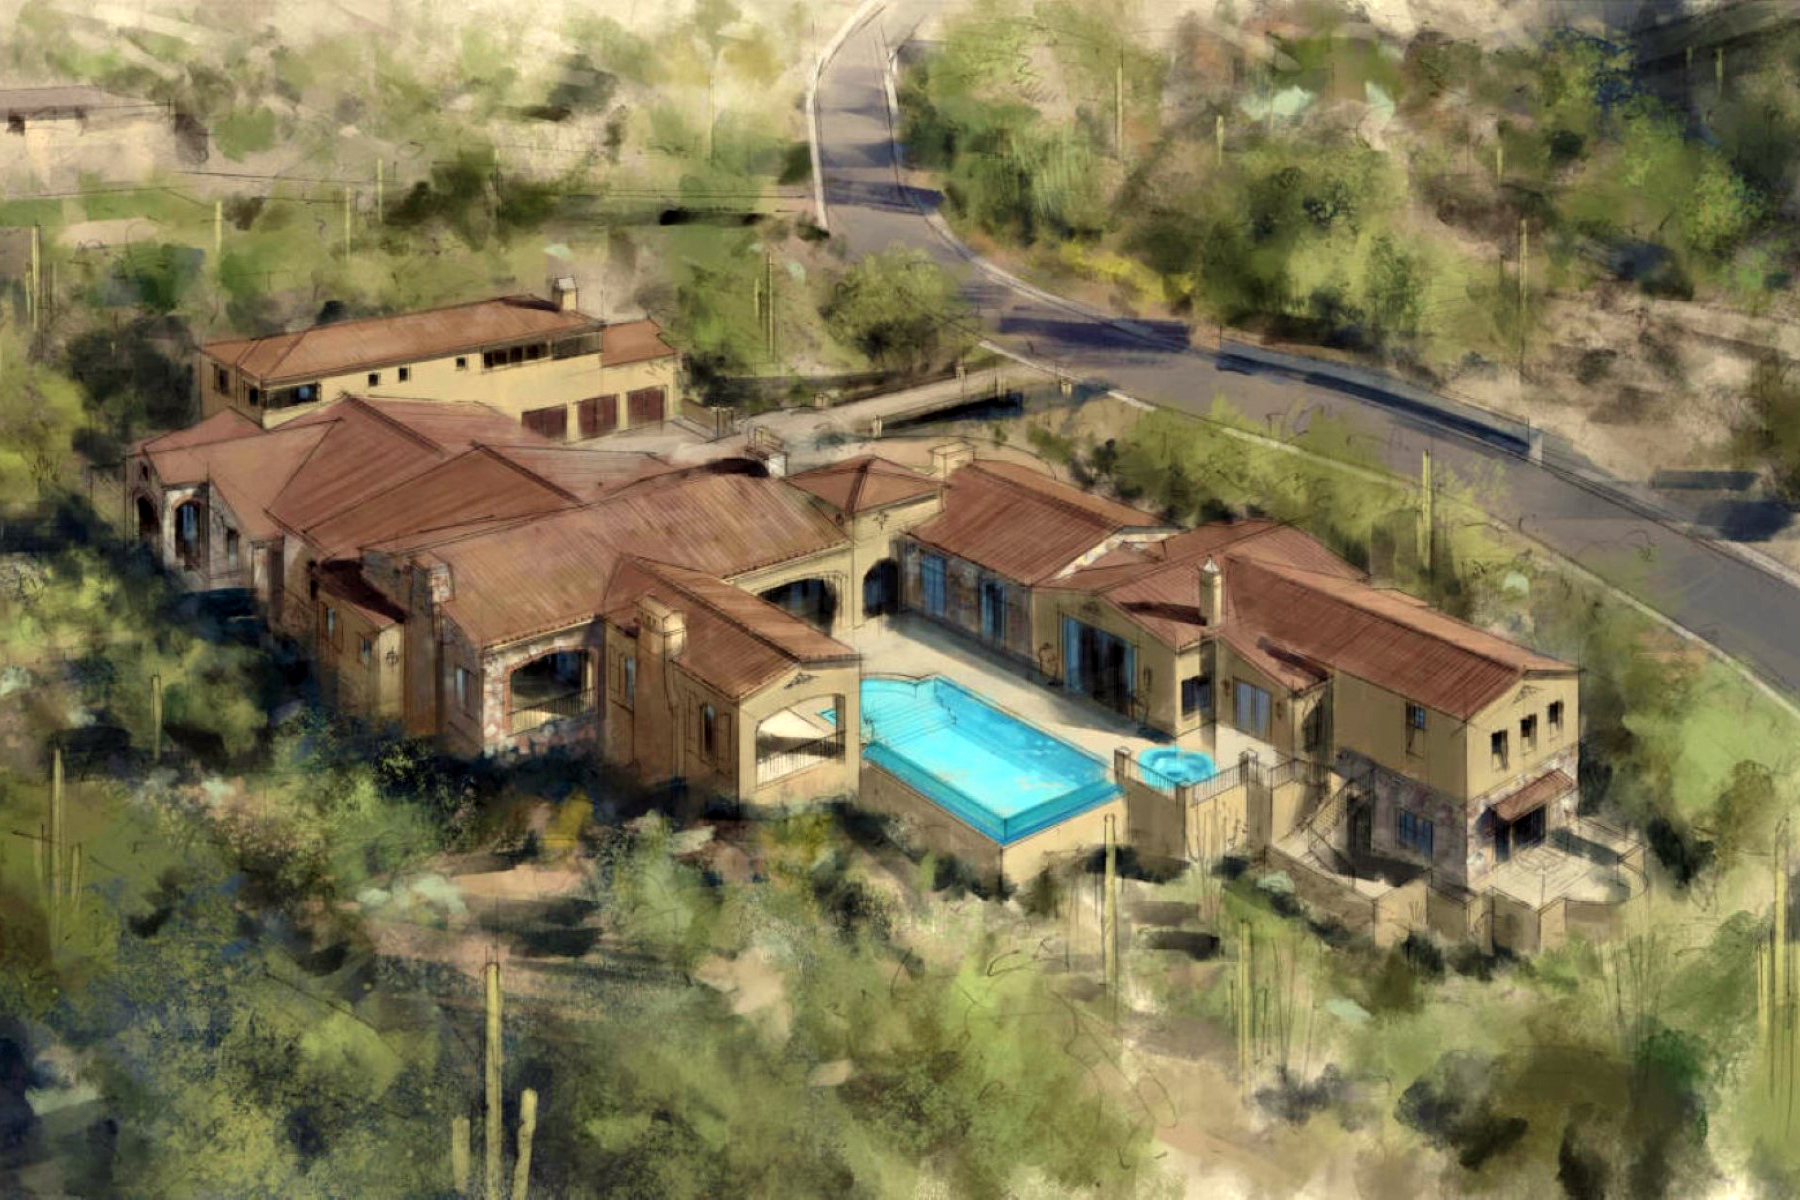 Property For Sale at Stunning Silverleaf Luxury New Build With Valley Views